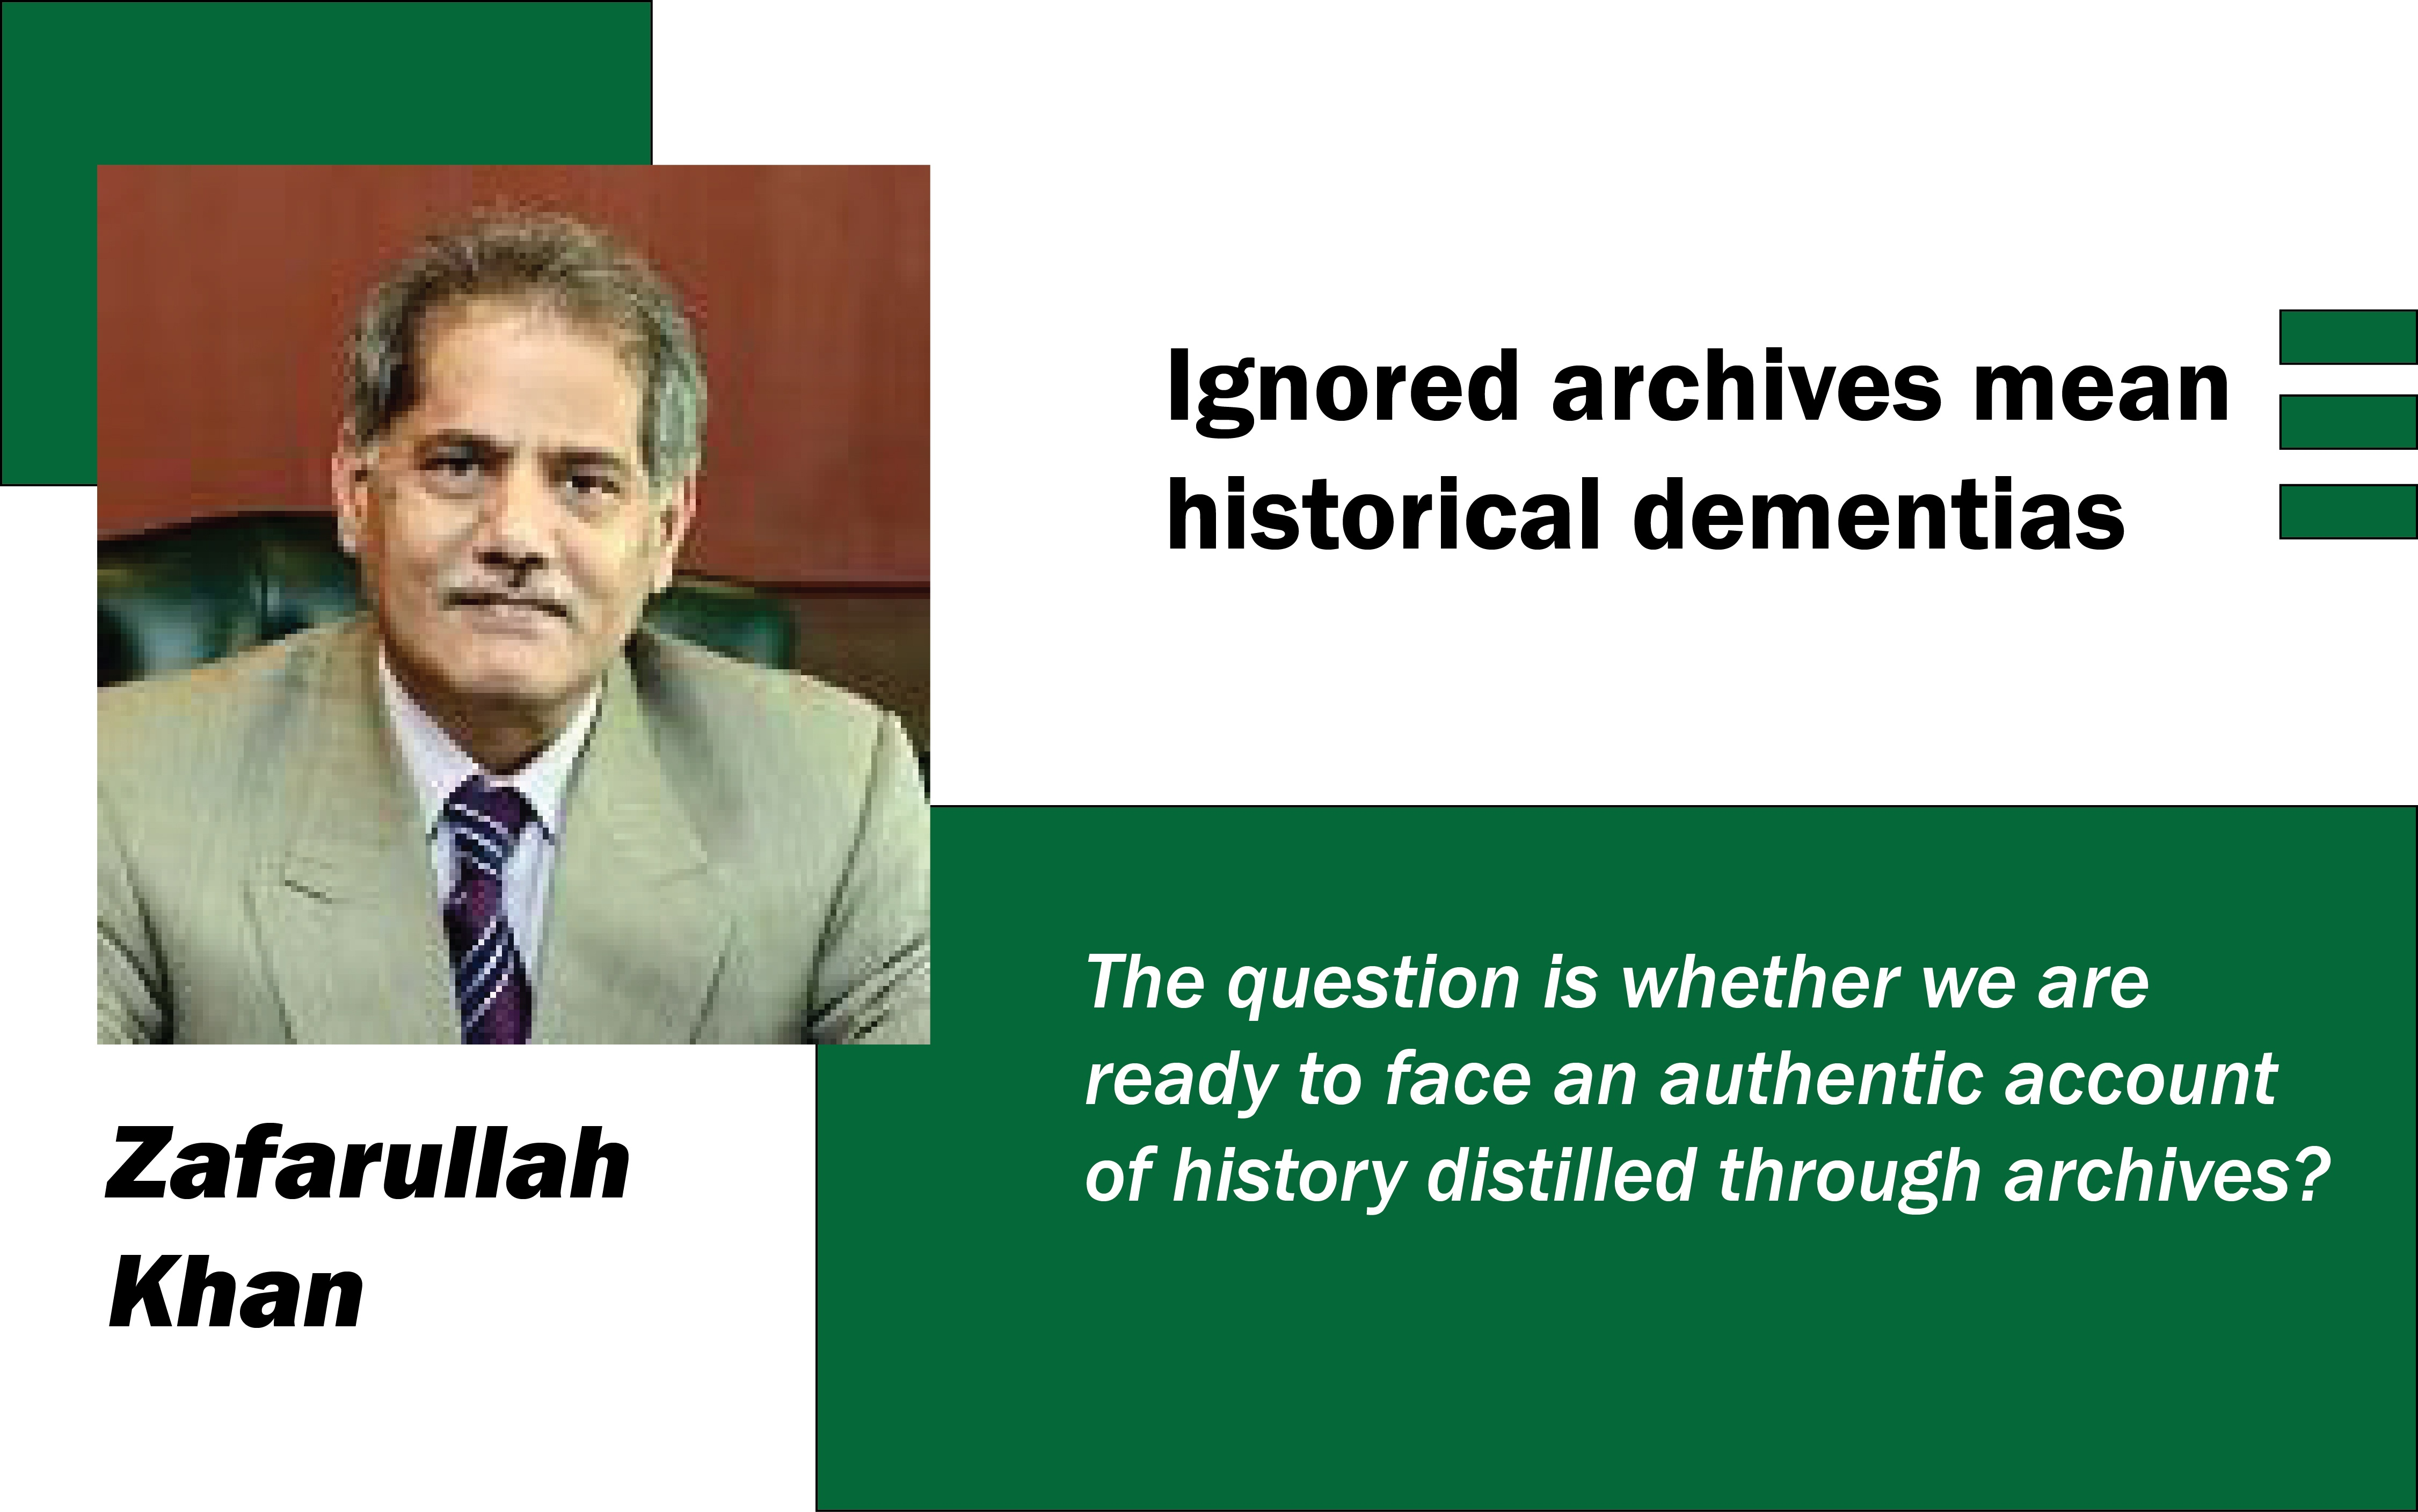 Ignored archives mean historical dementias